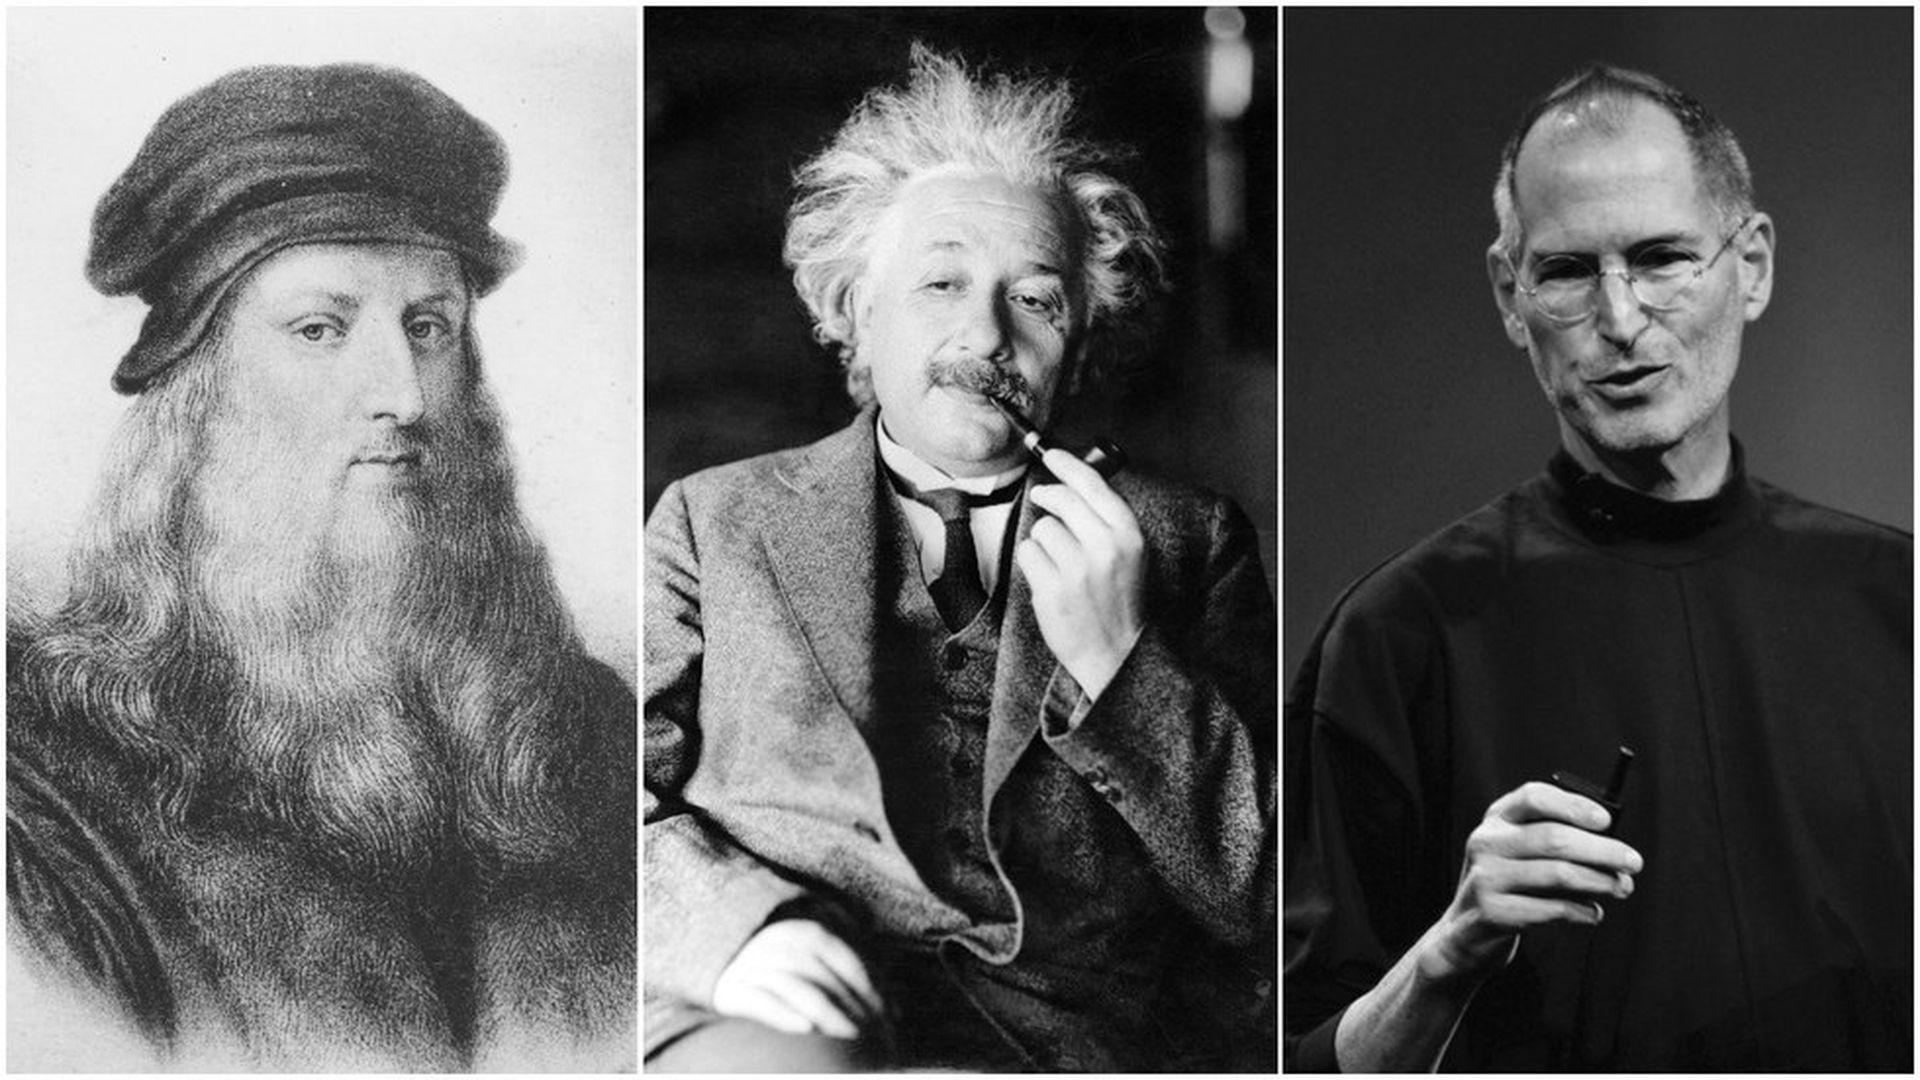 Without the benefit of history, how would a rational HR person respond to these three misfits? Think carefully.